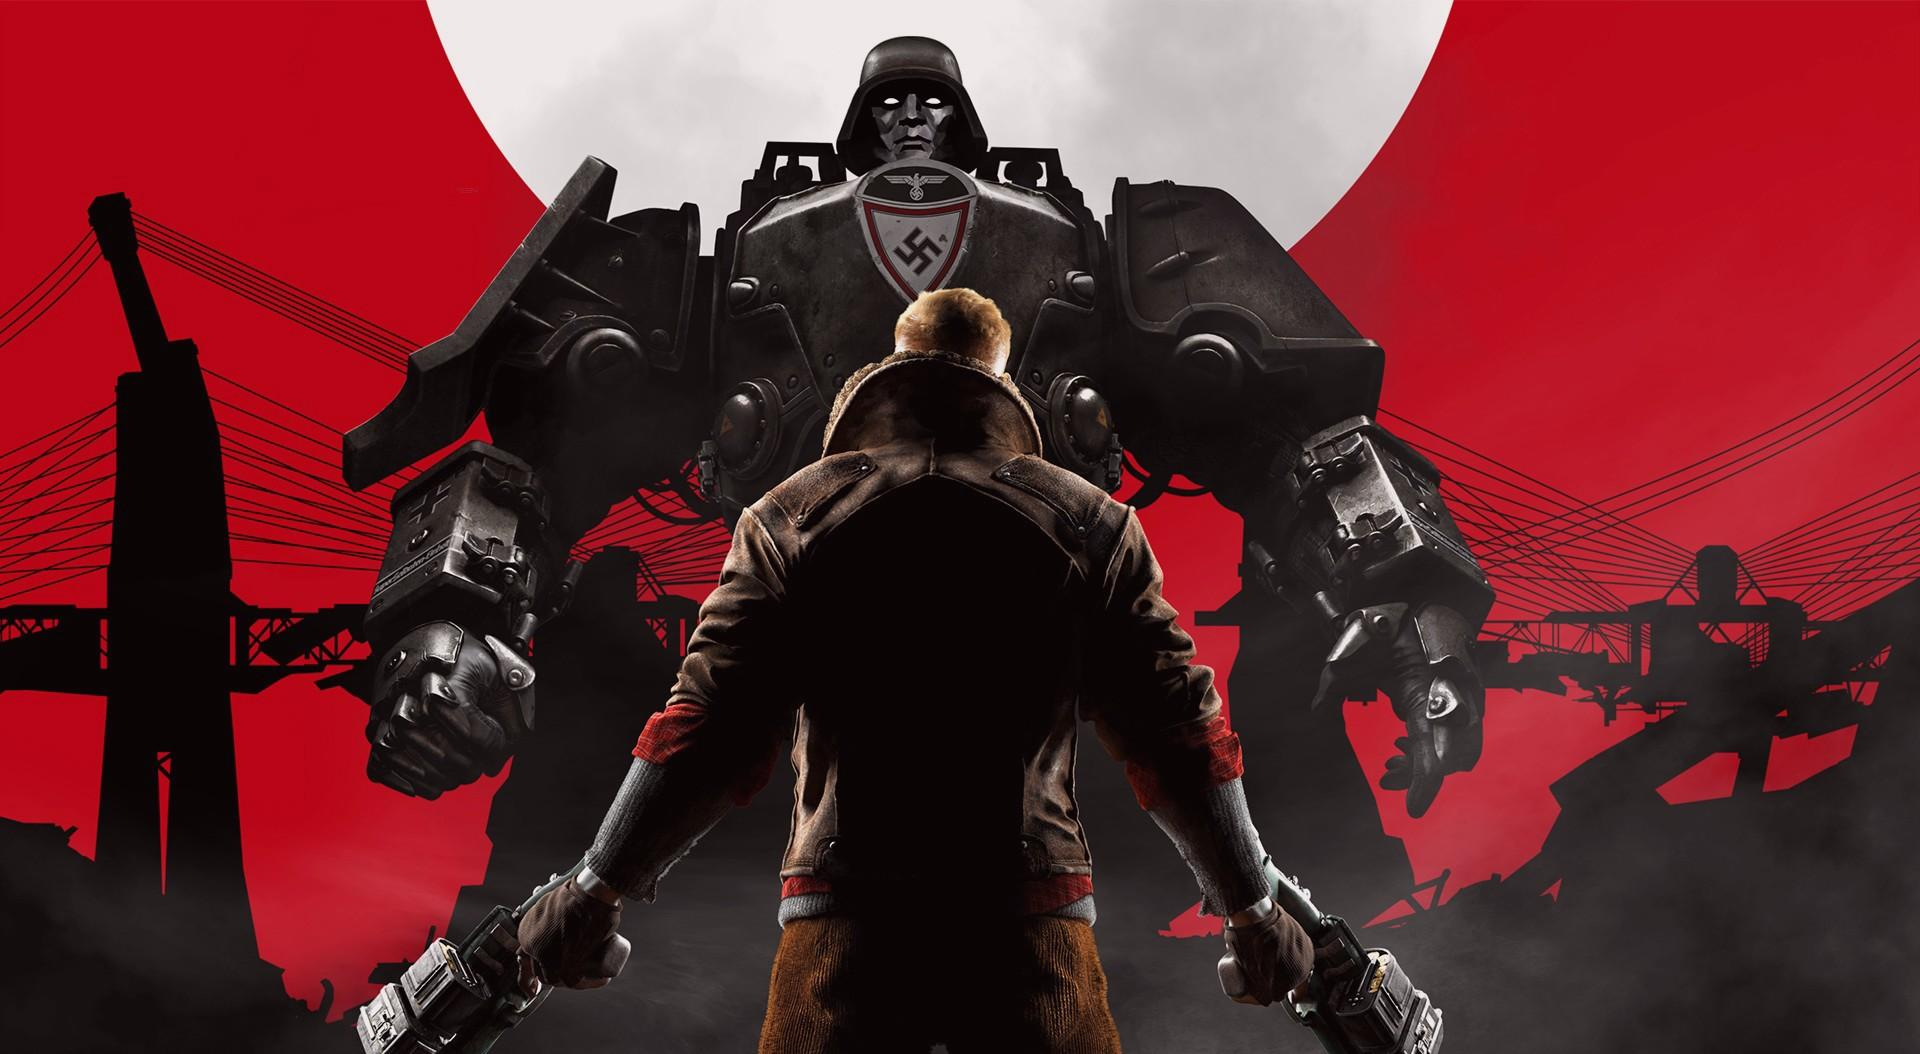 http://freshwallpapers.info/uploads/posts/2016-02/19_wolfenstein_the_new_order.jpg